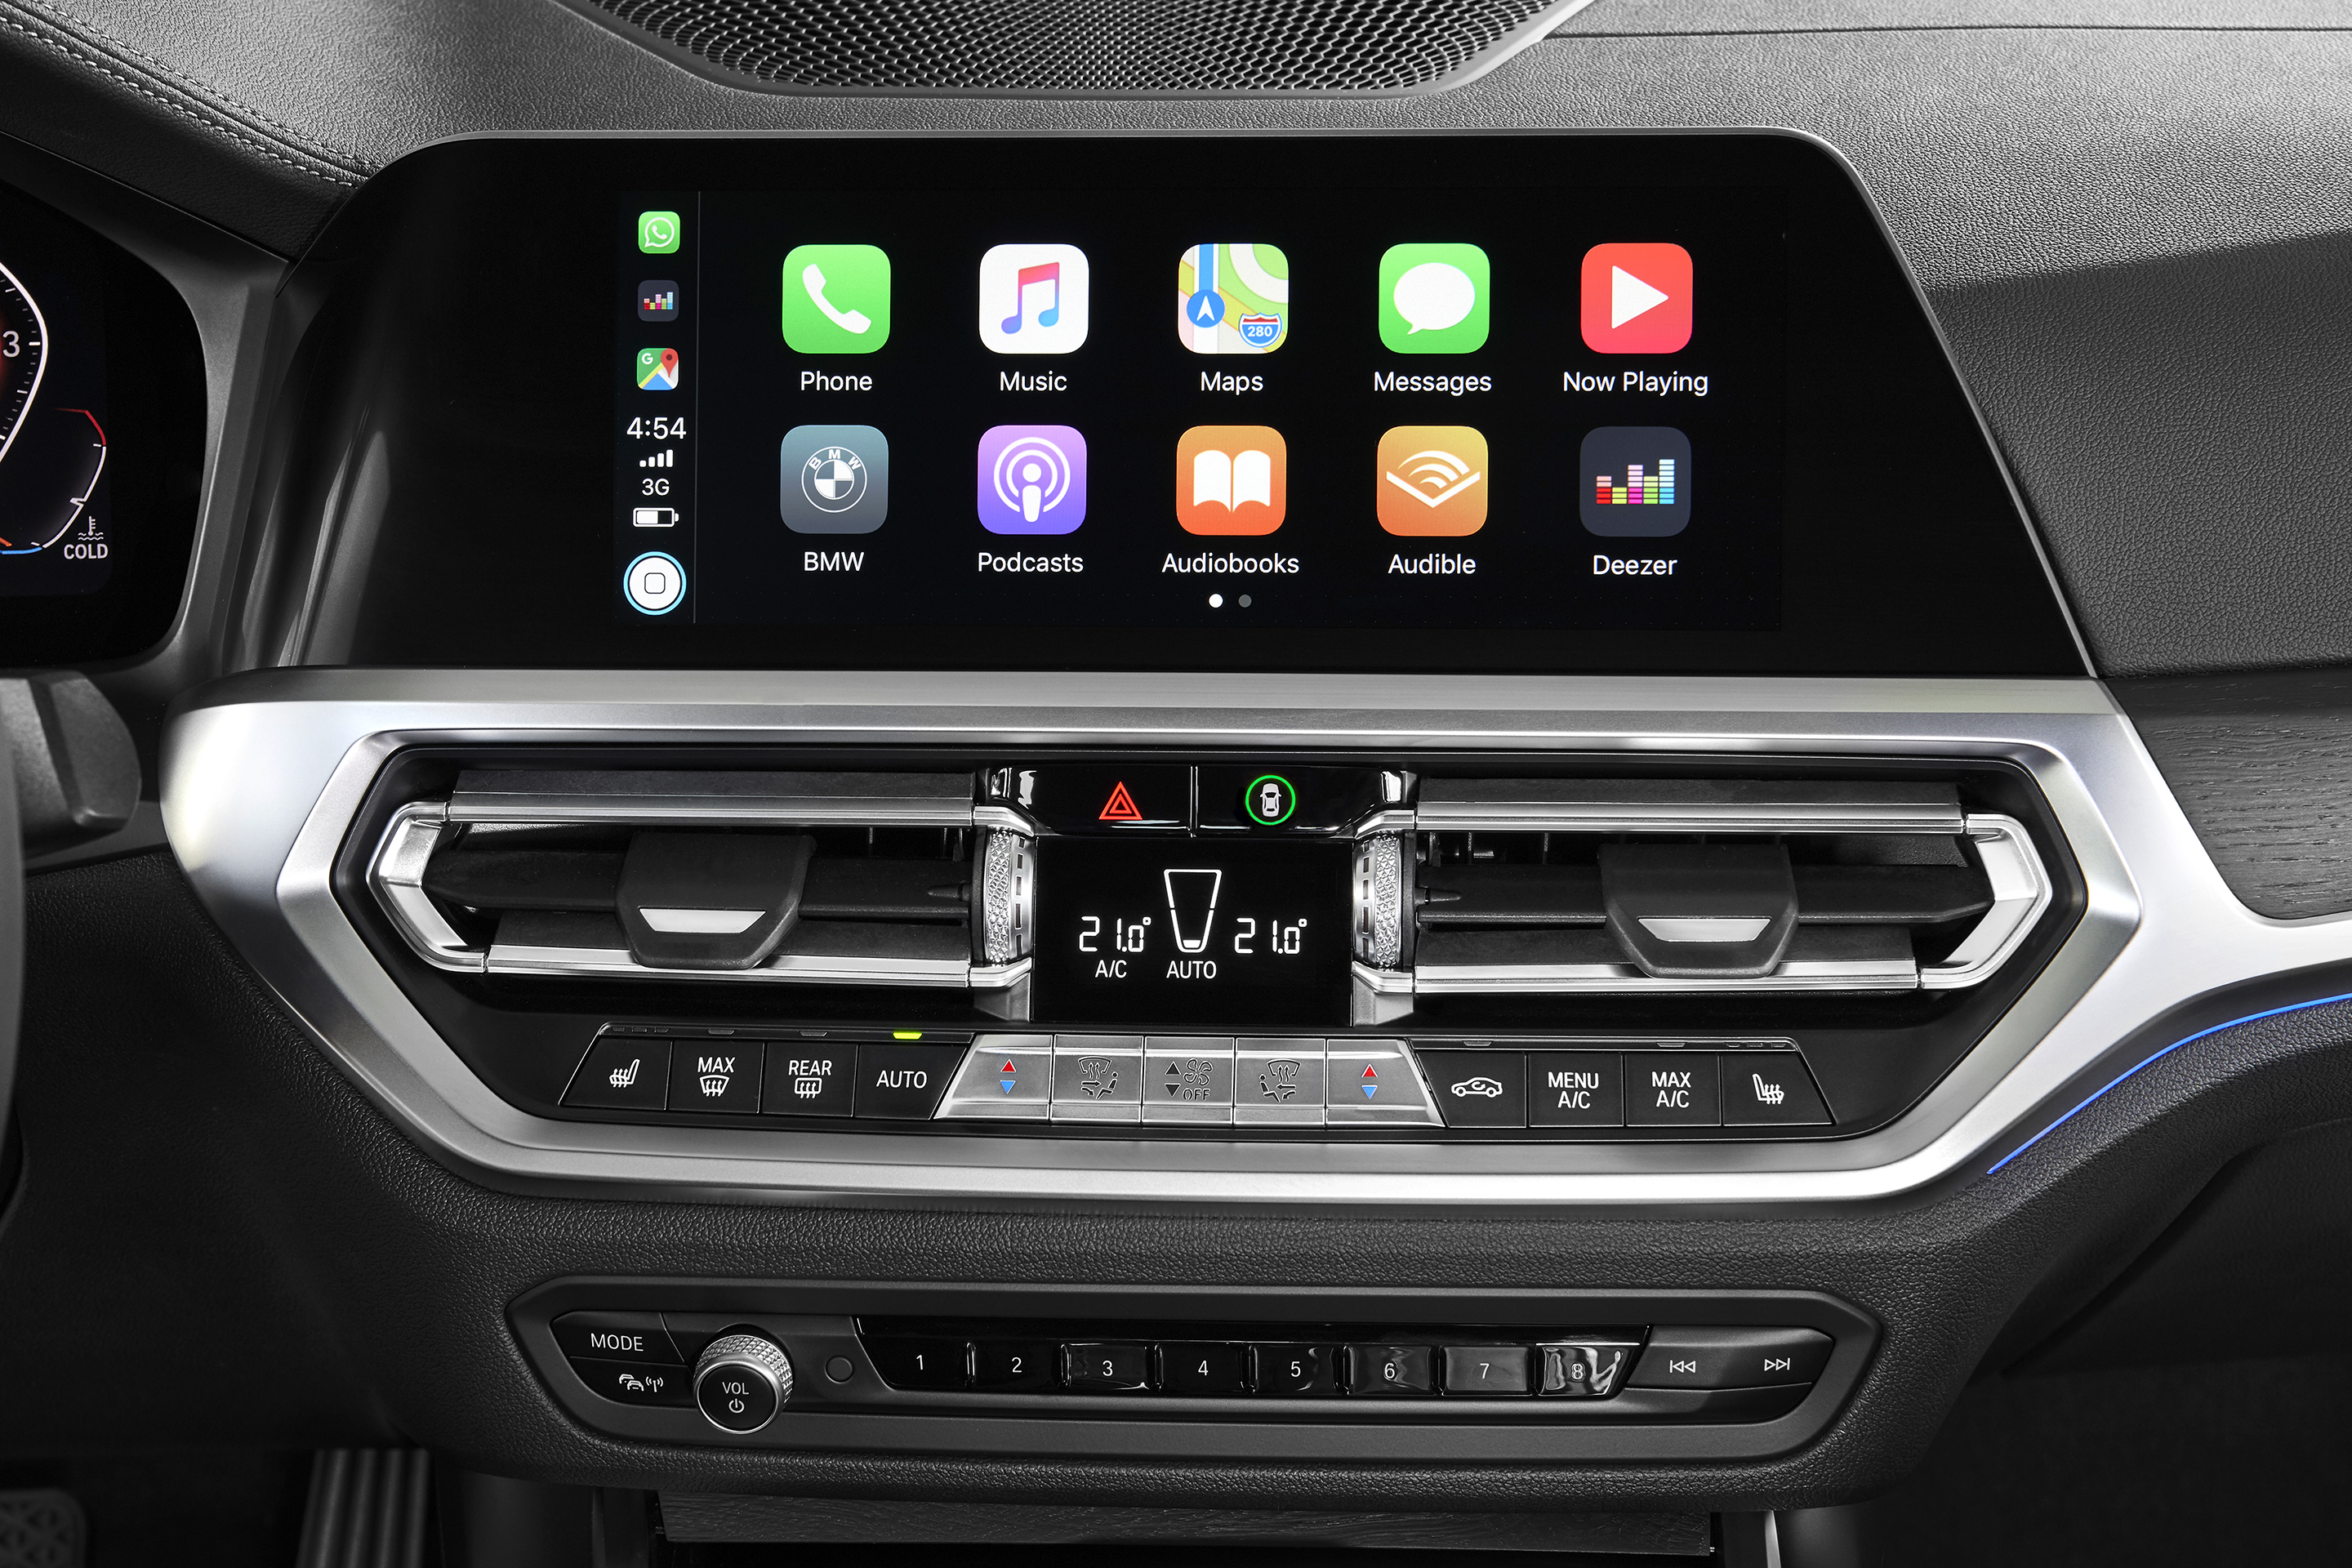 Digital Assistants Inside Cars Raise Serious Privacy